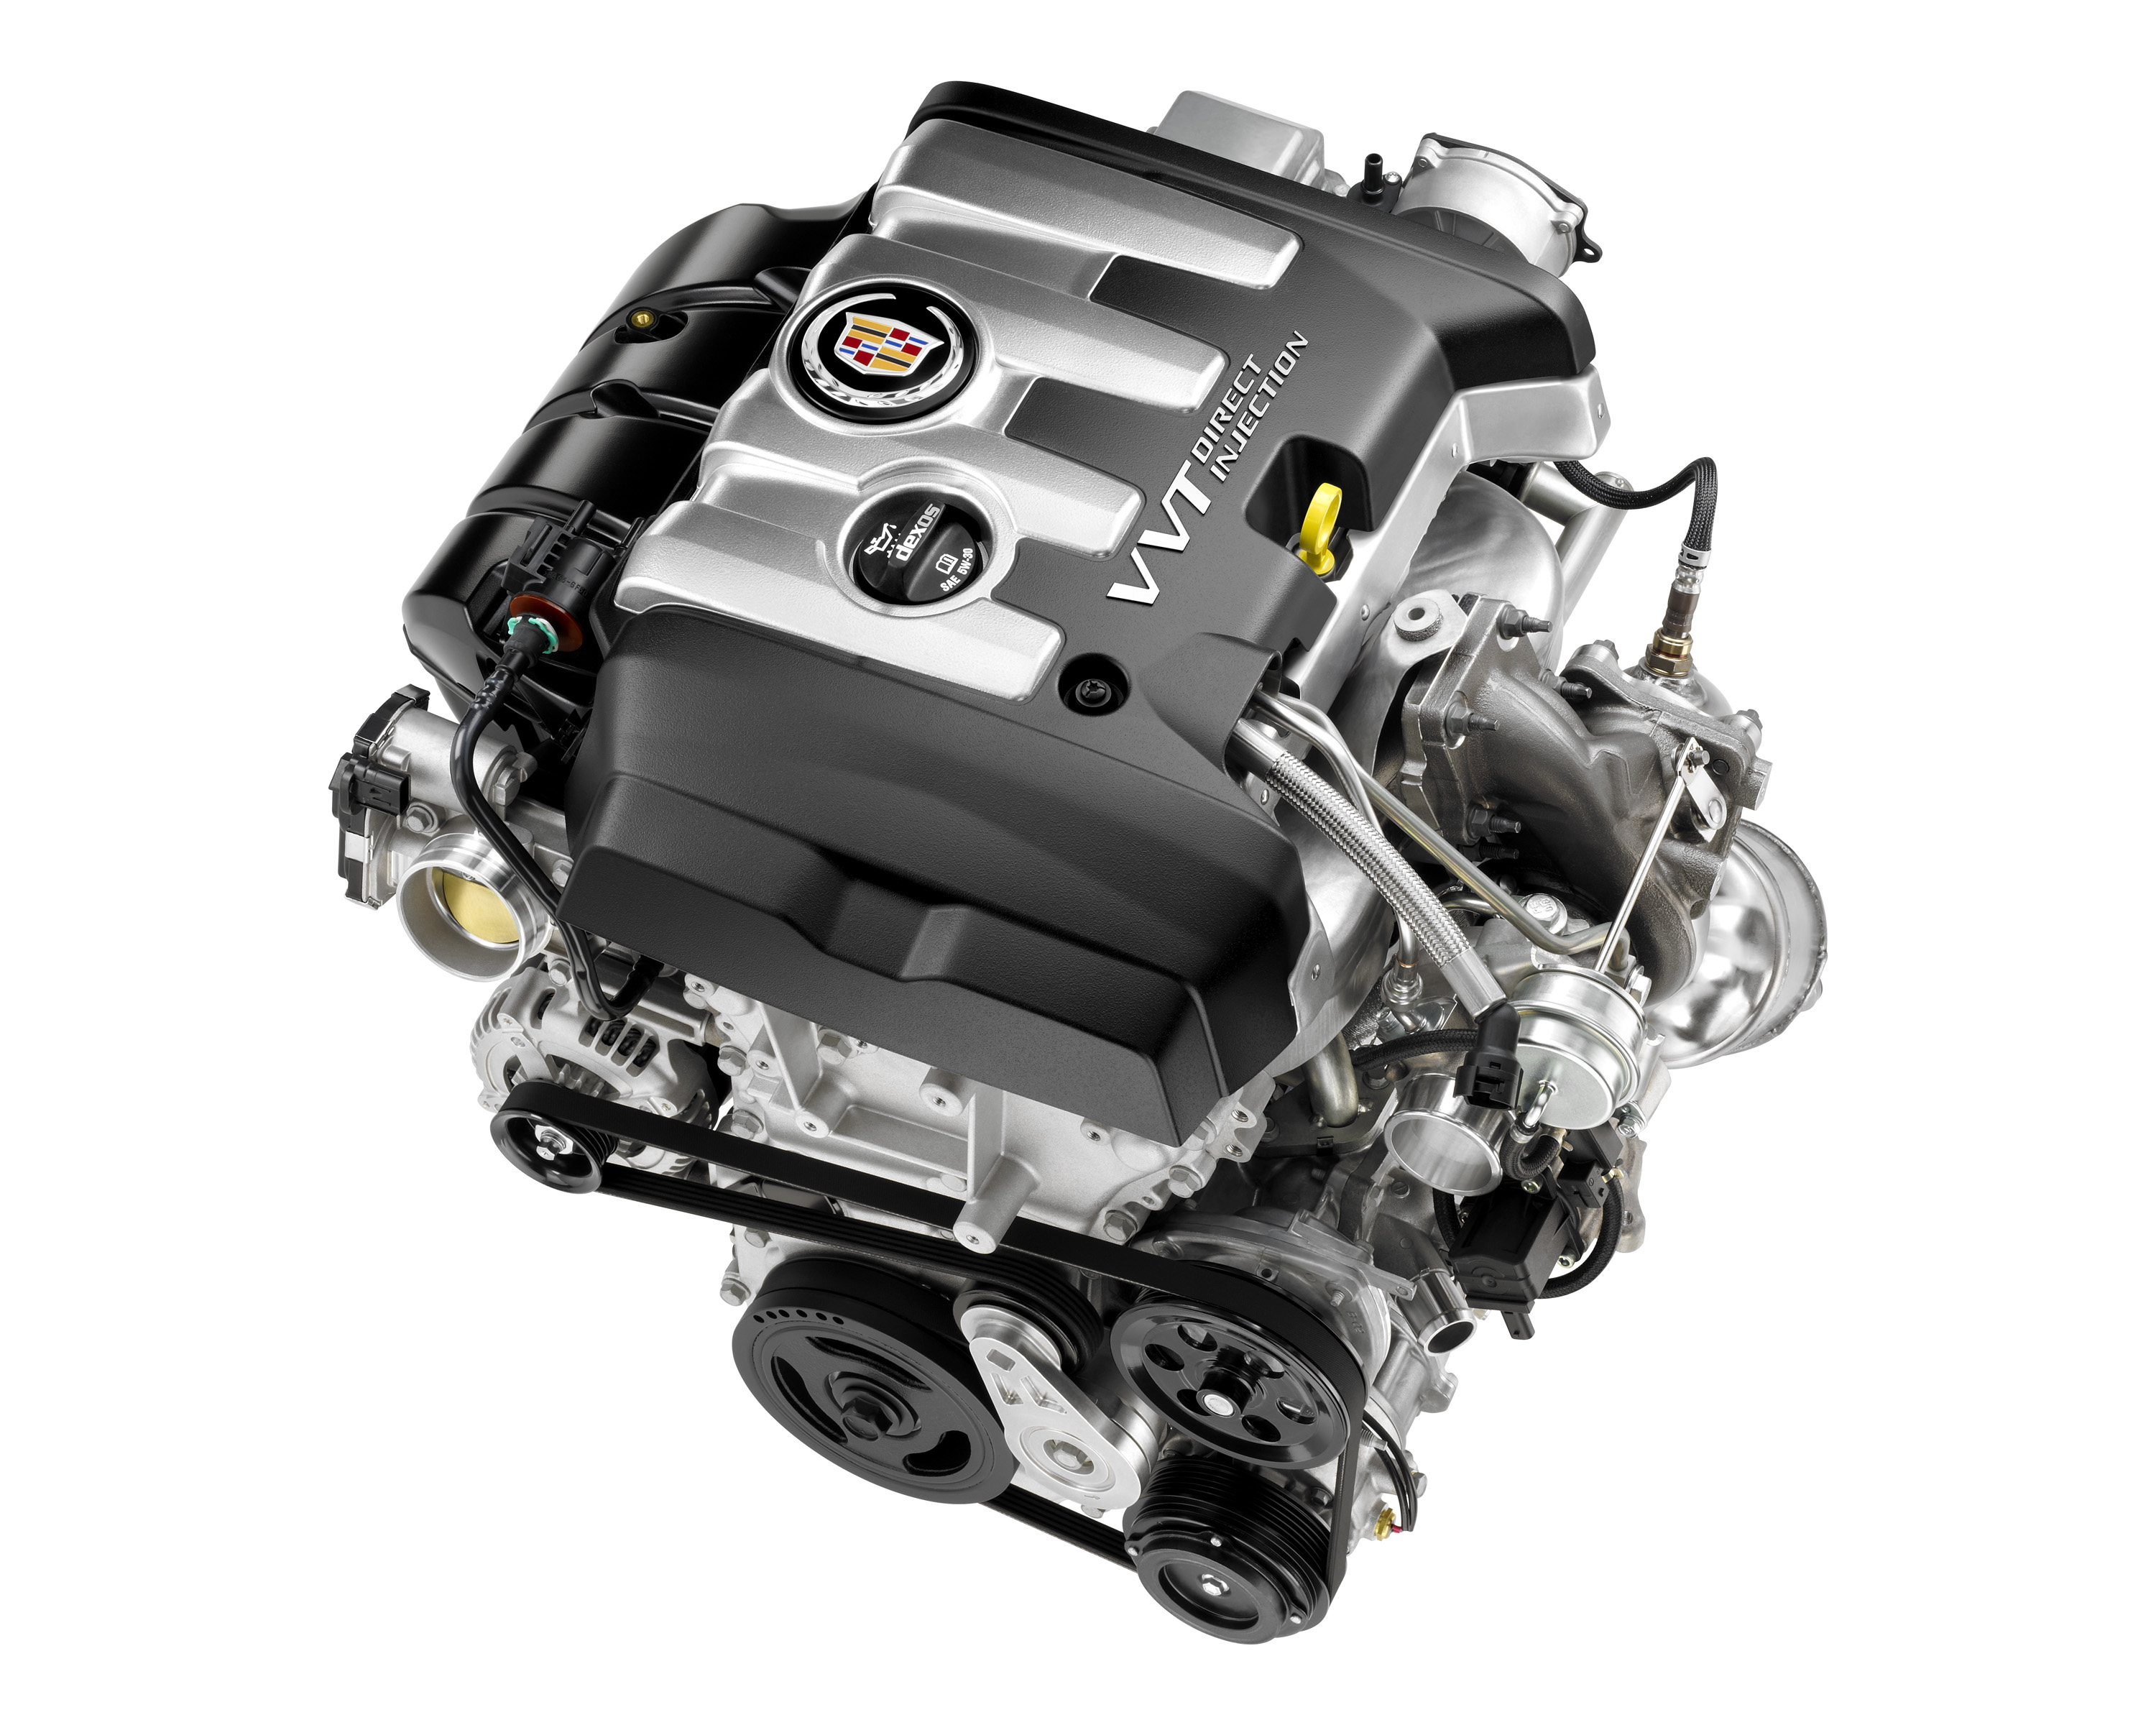 The direct injected 2.0 L turbocharged four cylinder engine, with an estimated 260 horsepower (184 kW), will be among the powertrain options available in the all-new 2013 Cadillac ATS compact luxury sedan.